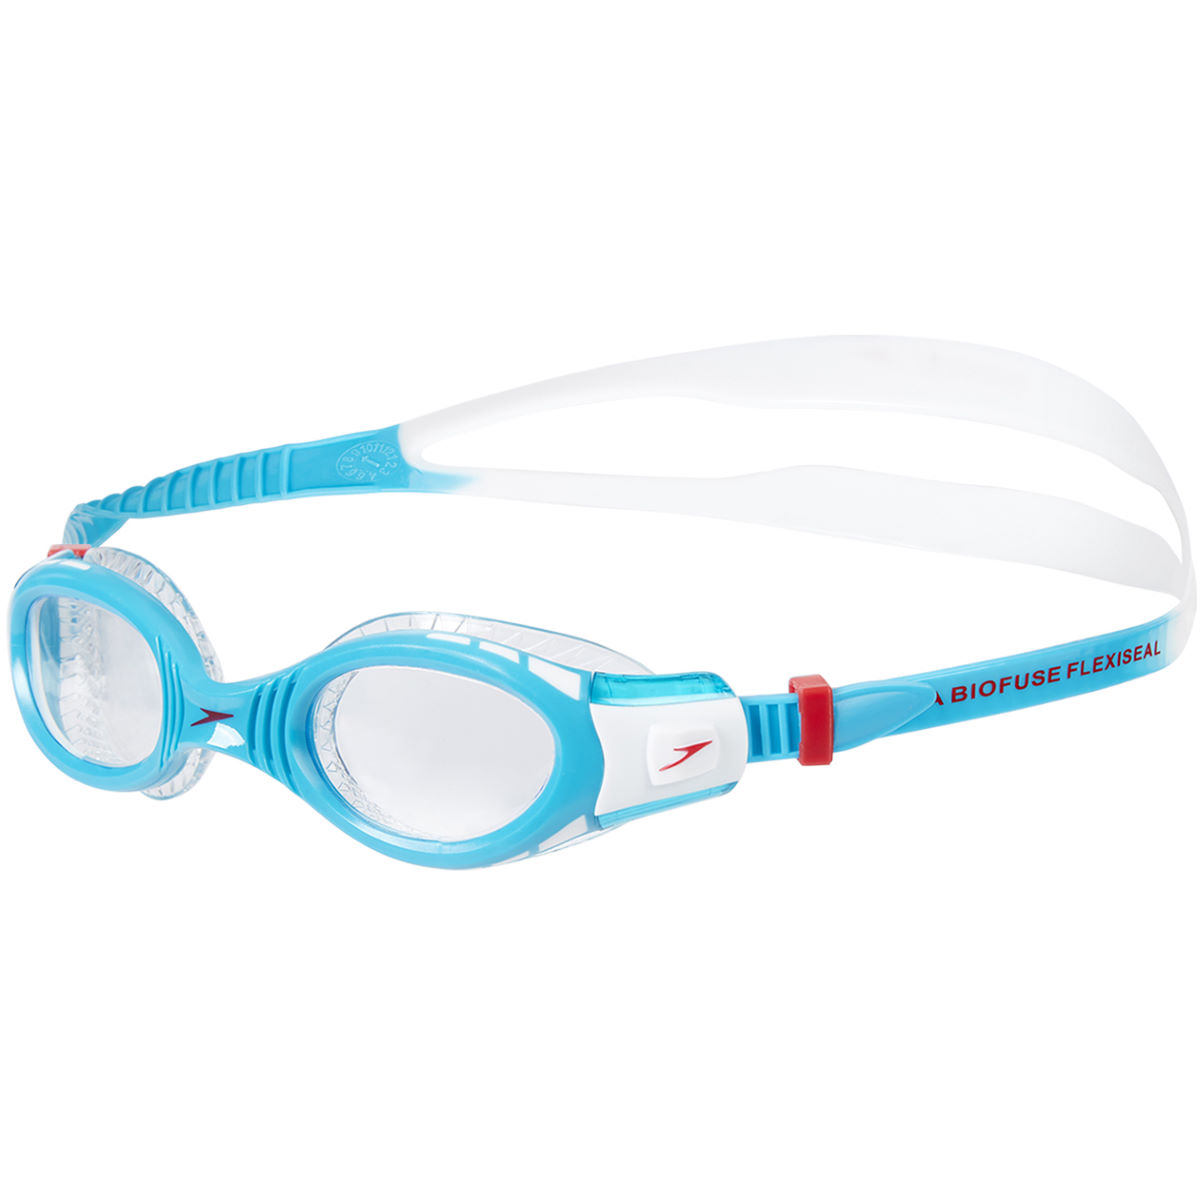 Speedo Futura Biofuse Flexiseal Junior - Gafas